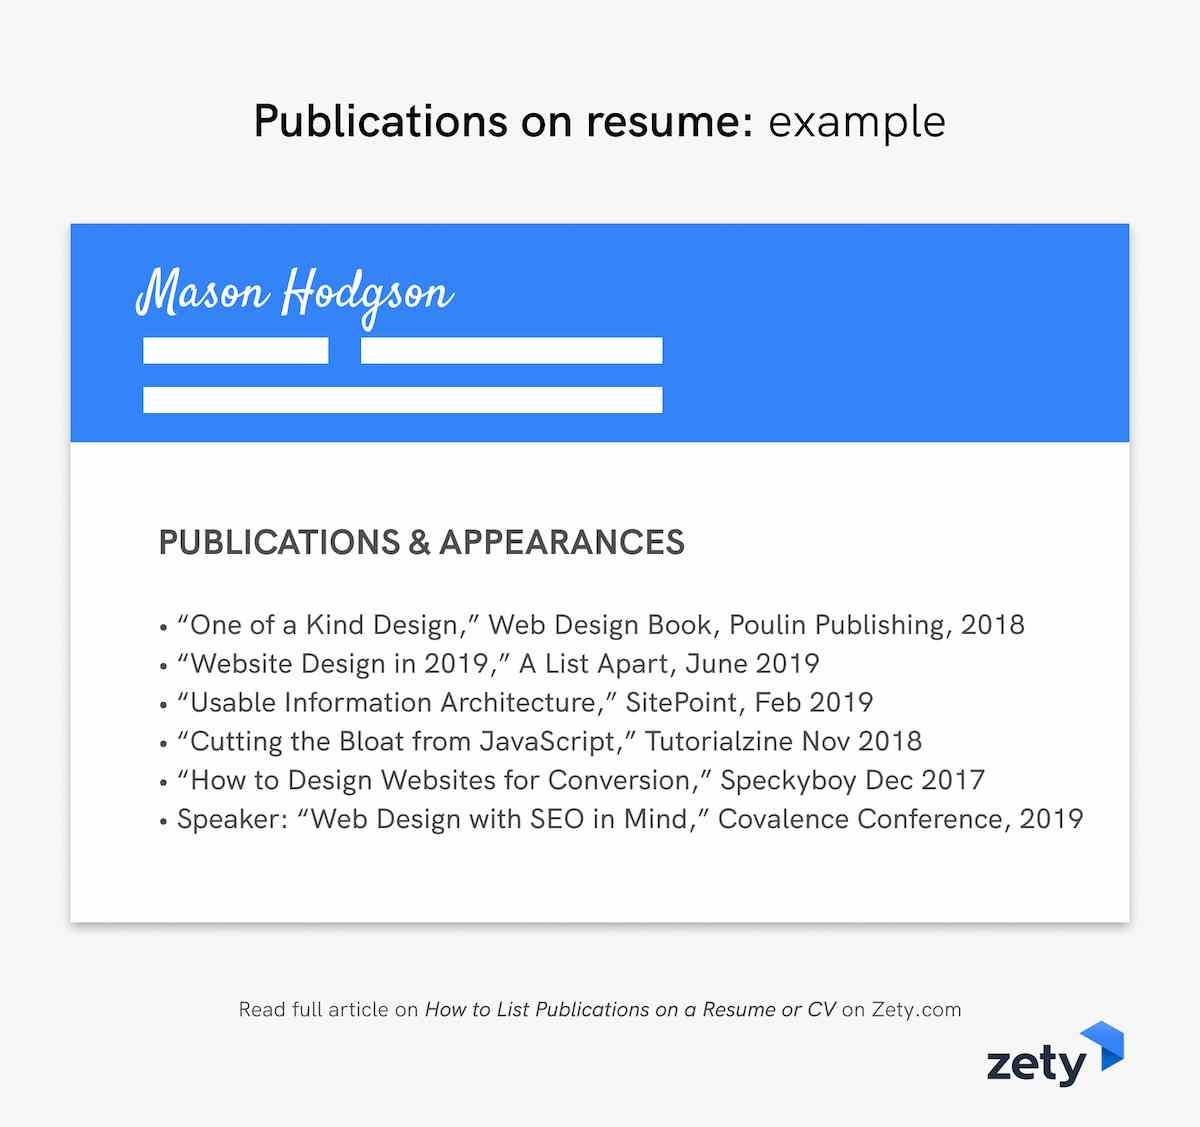 Publications on resume example